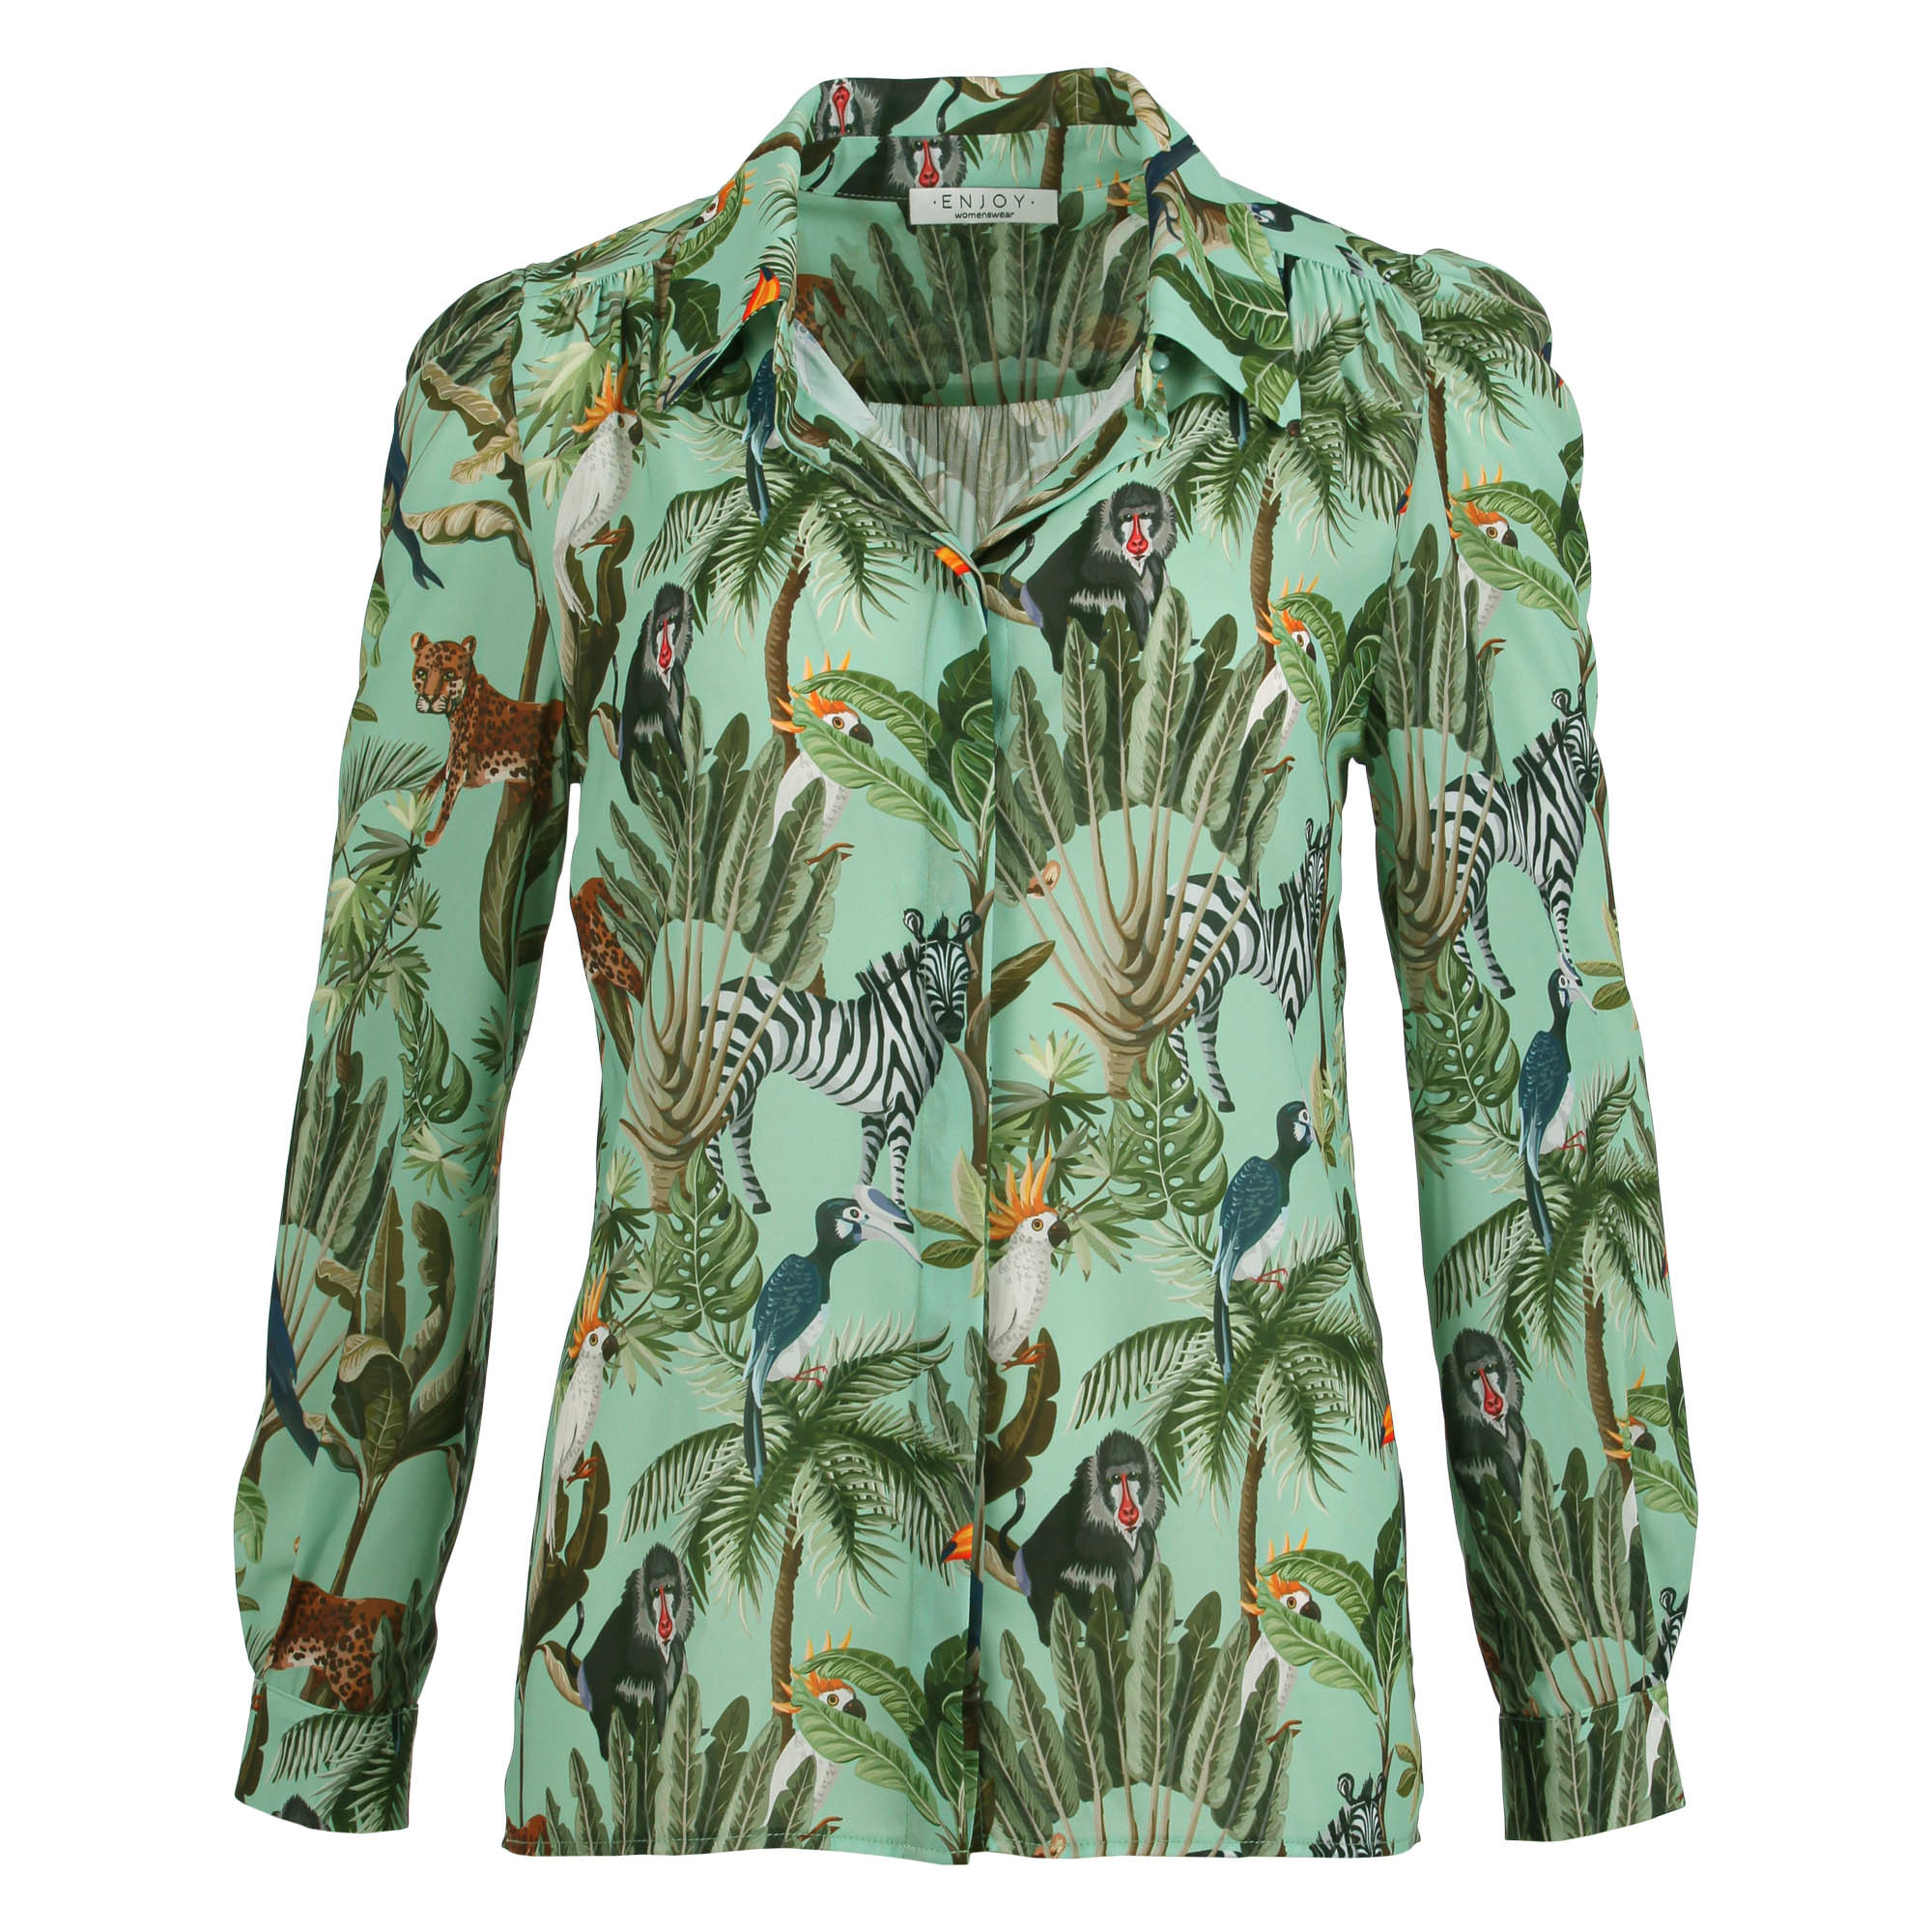 Enjoy Dames Blouse Tropisch 126247-1